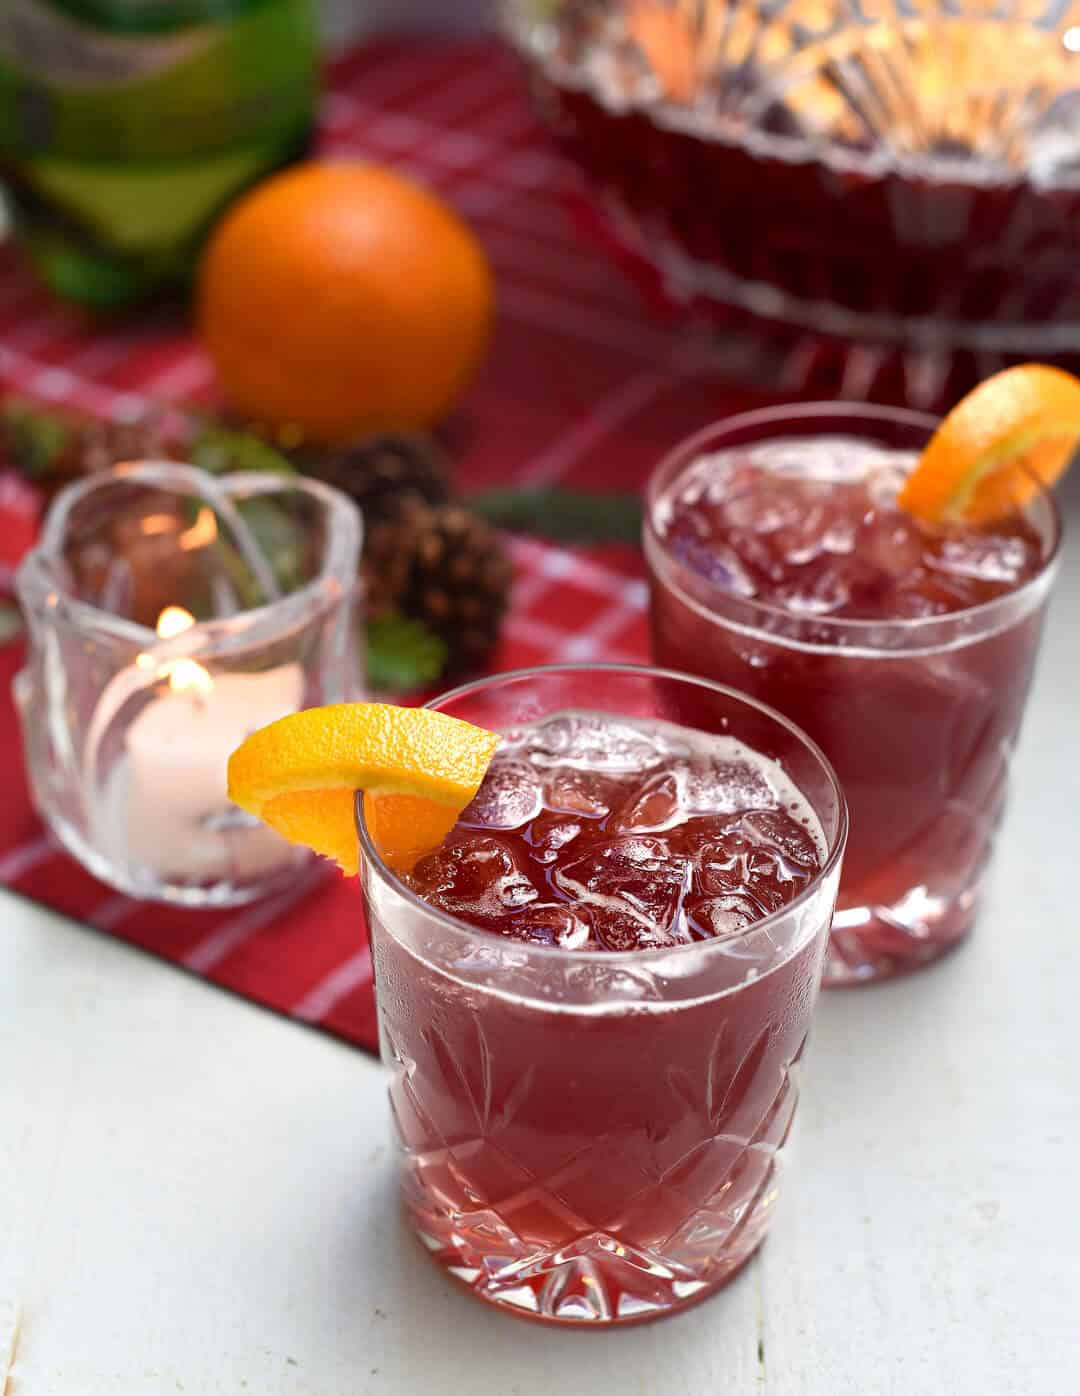 Two glasses of Sparkling Pomegranate Vodka Punch garnished with orange slices near a red cloth.